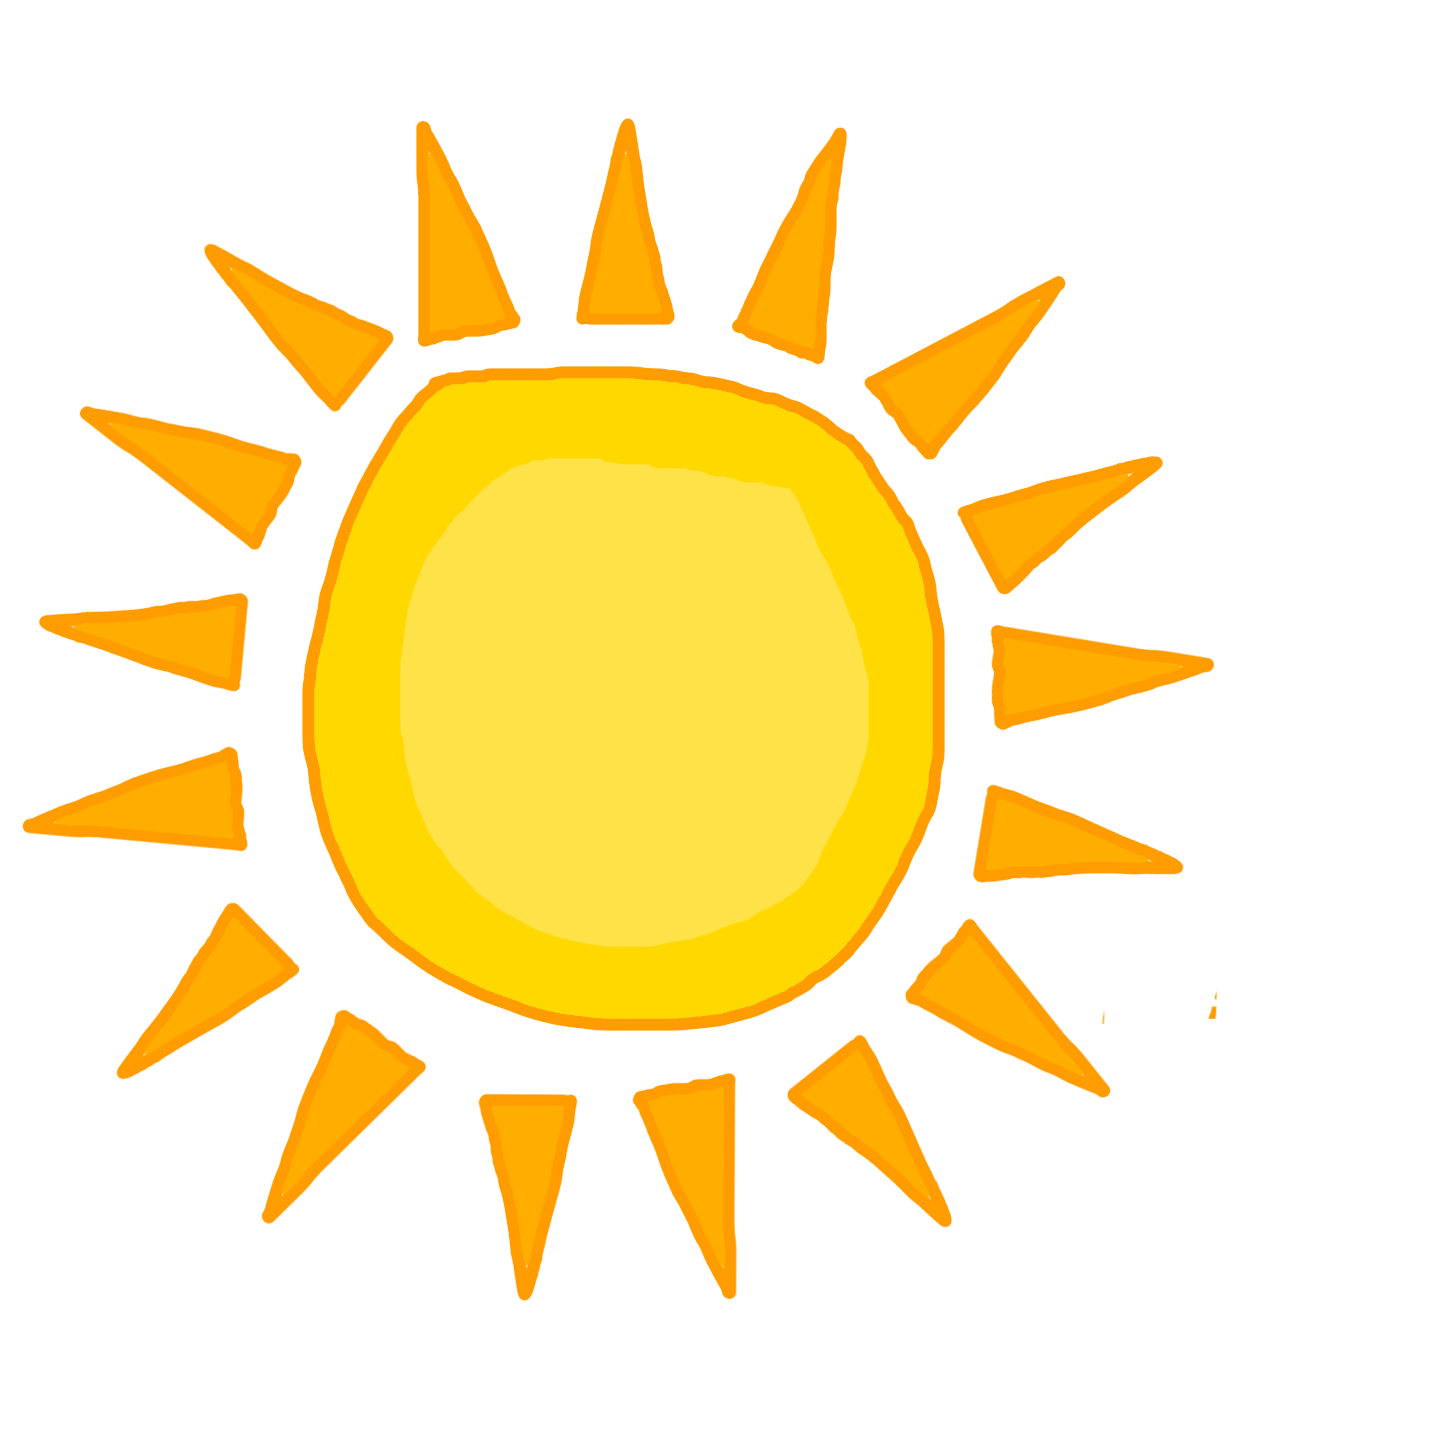 Download PNG image - Sun Png Clipart - Art Of Sun PNG